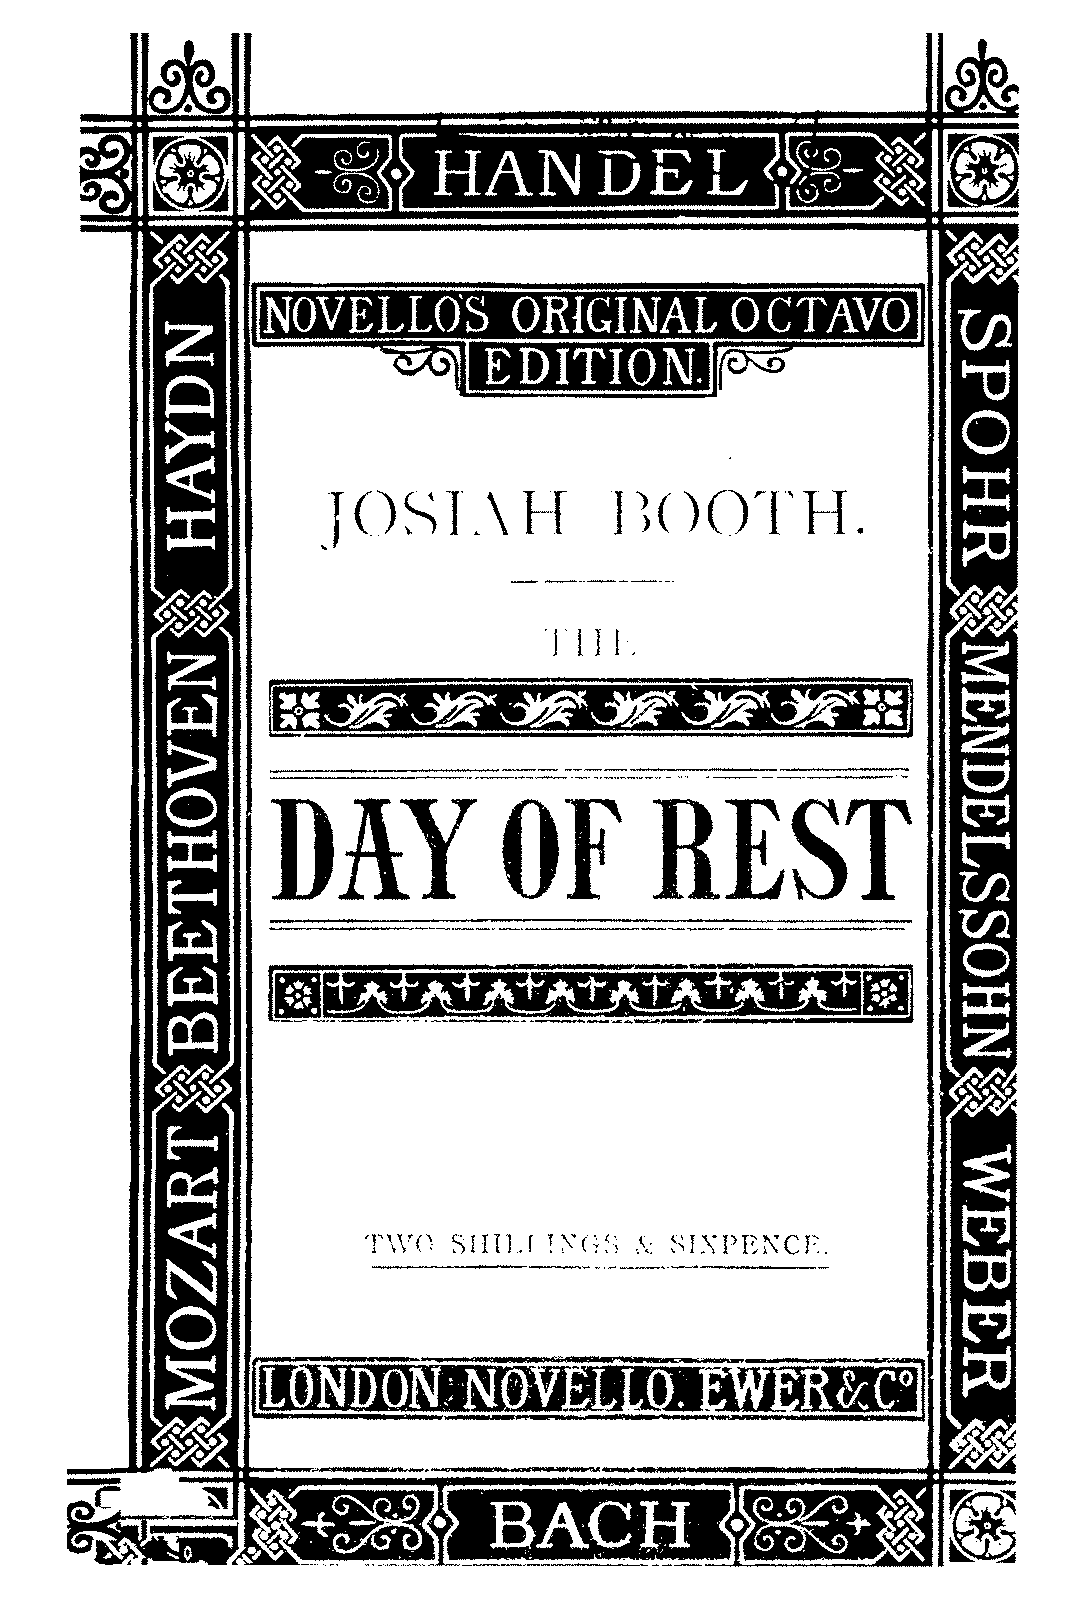 PMLP690011-JBooth The Day of Rest.pdf